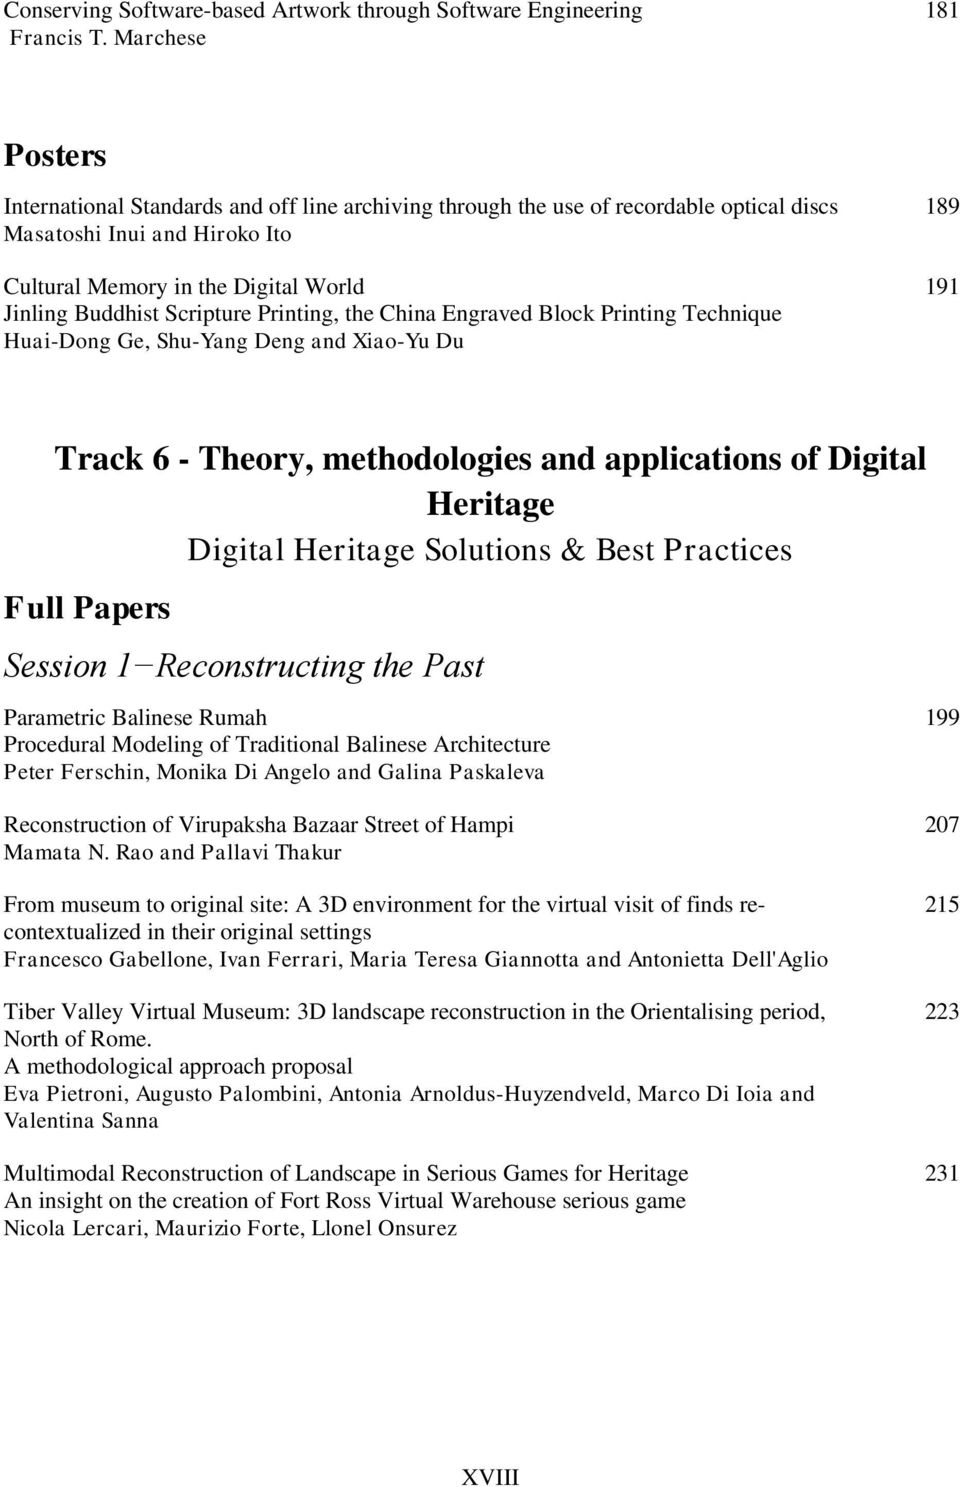 Scripture Printing, the China Engraved Block Printing Technique Huai-Dong Ge, Shu-Yang Deng and Xiao-Yu Du 189 191 Track 6 - Theory, methodologies and applications of Digital Heritage Digital